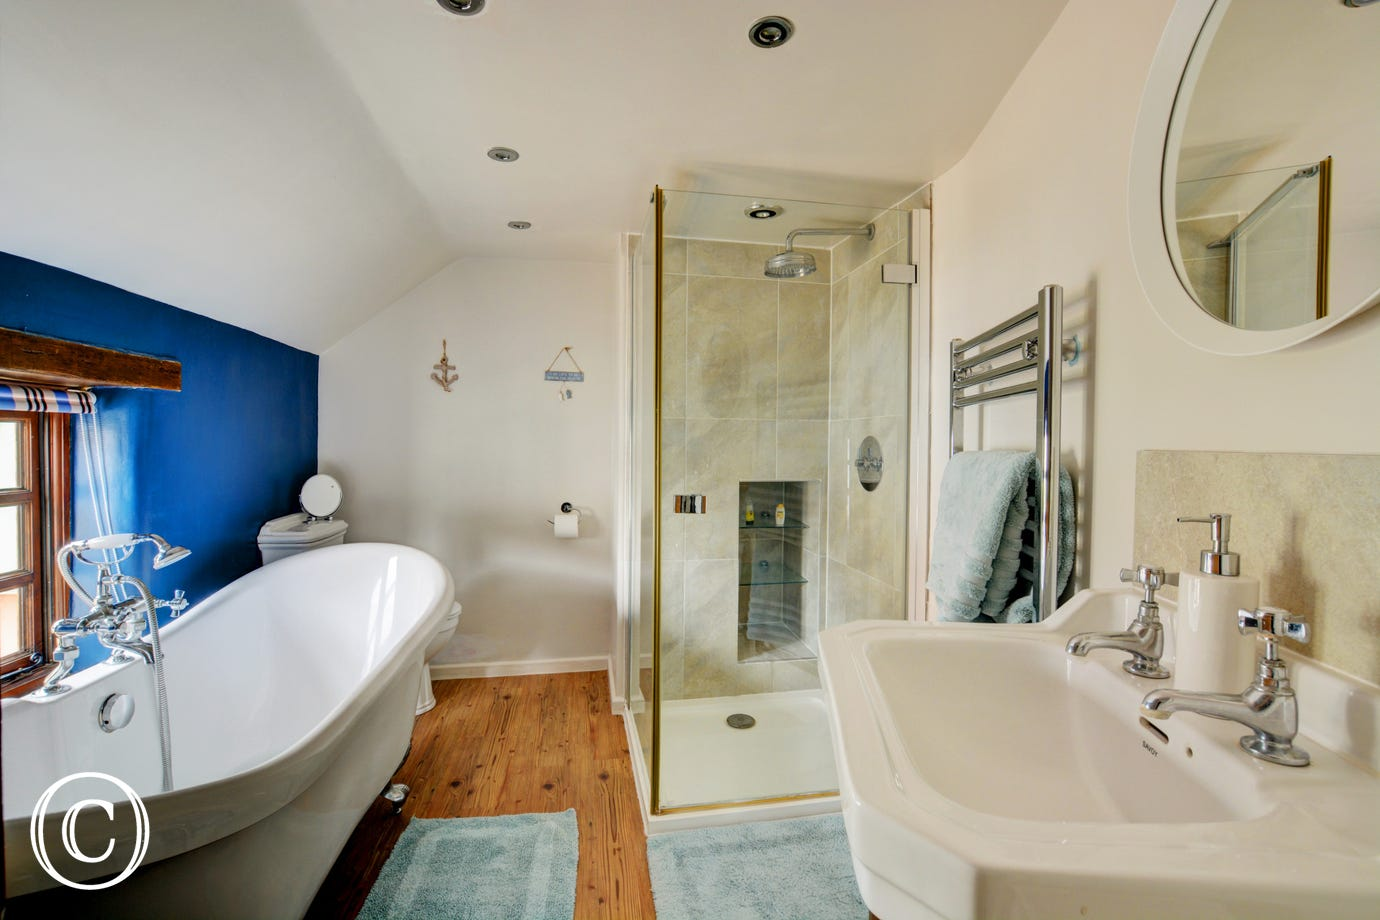 En -suite bathroom with roll top bath, shower cubicle, washbasin and w.c